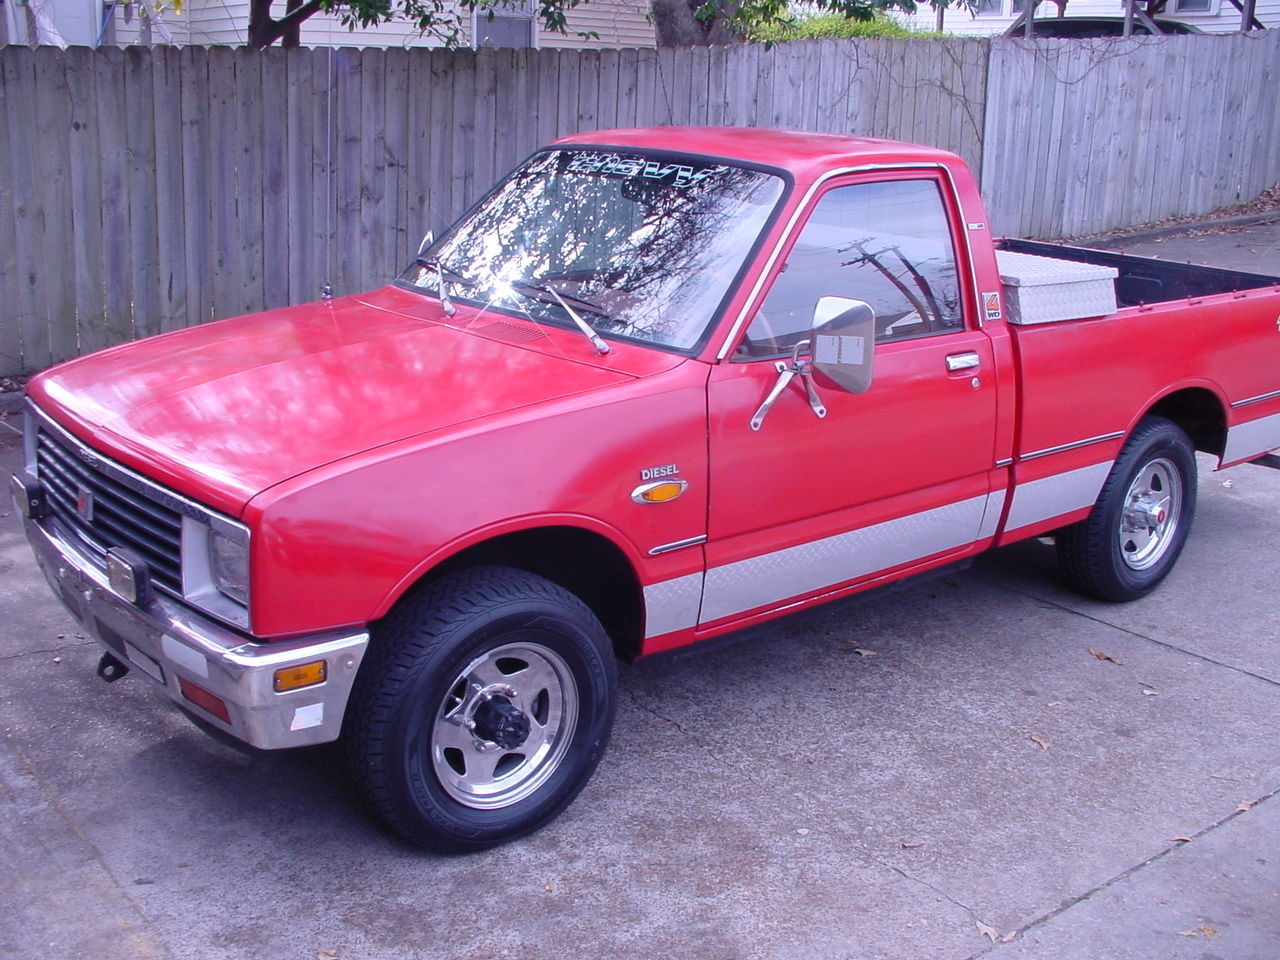 hight resolution of 1983 chevy luv diesel 4x4 4wd nice isuzu pup